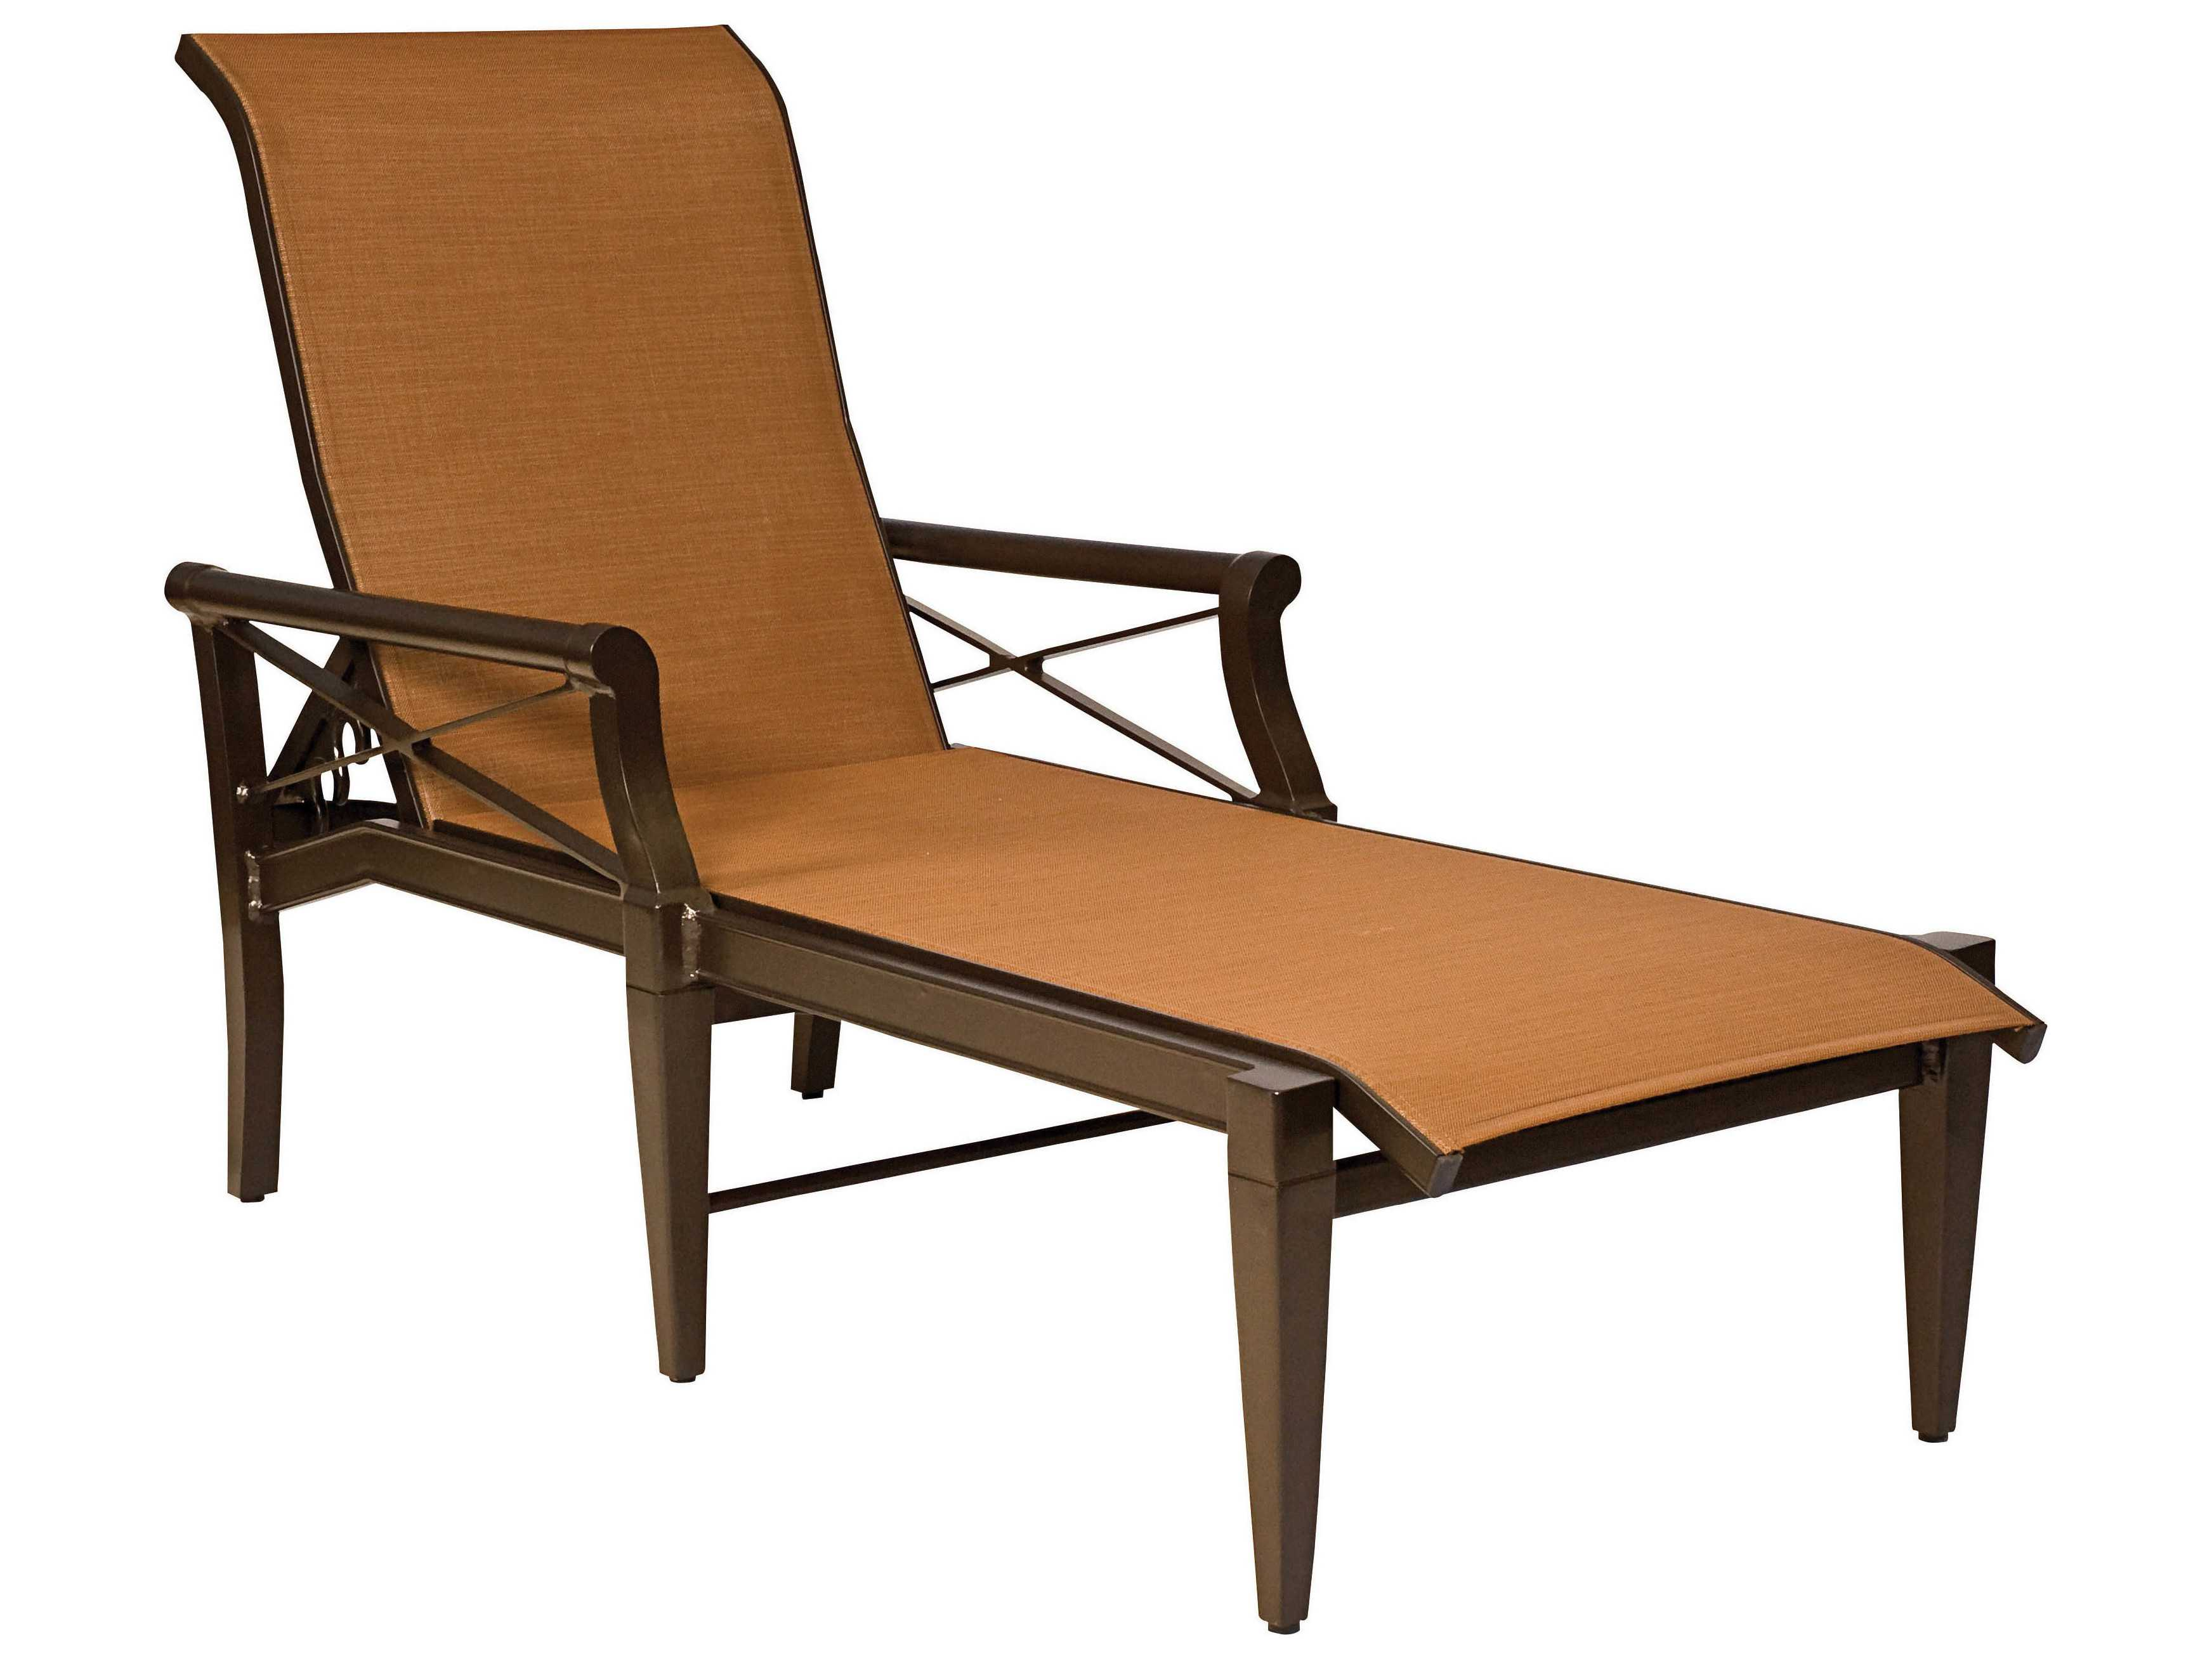 Woodard andover sling aluminum chaise lounge 3q0470 for Aluminum sling chaise lounge